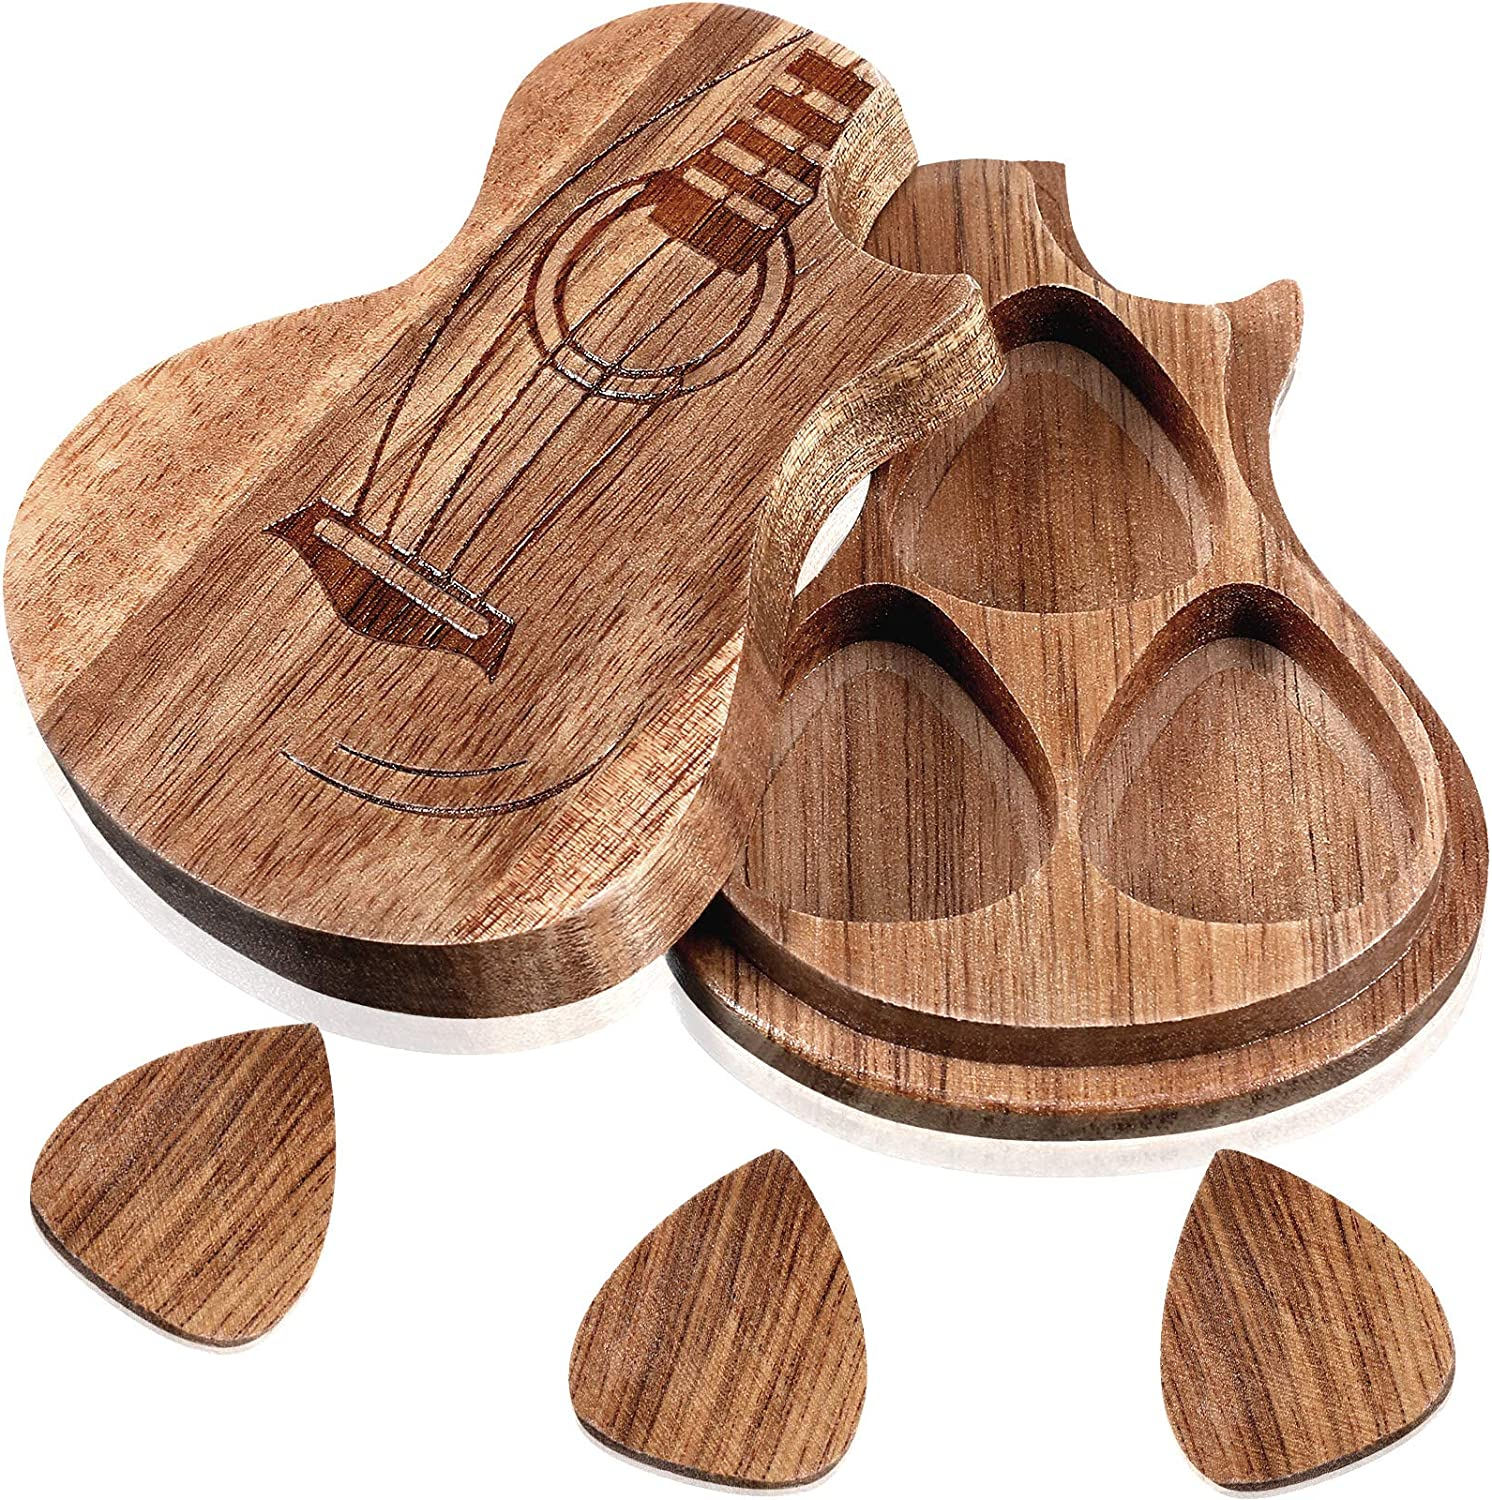 Guitar Wooden Box Holder Guitar Shaped Pick Box Wooden Collector with 3 Pieces Wood Guitar Picks Engraved Guitar Pick Box Classical Triangle Guitar Picks for Guitar Bass Music Instrument Present